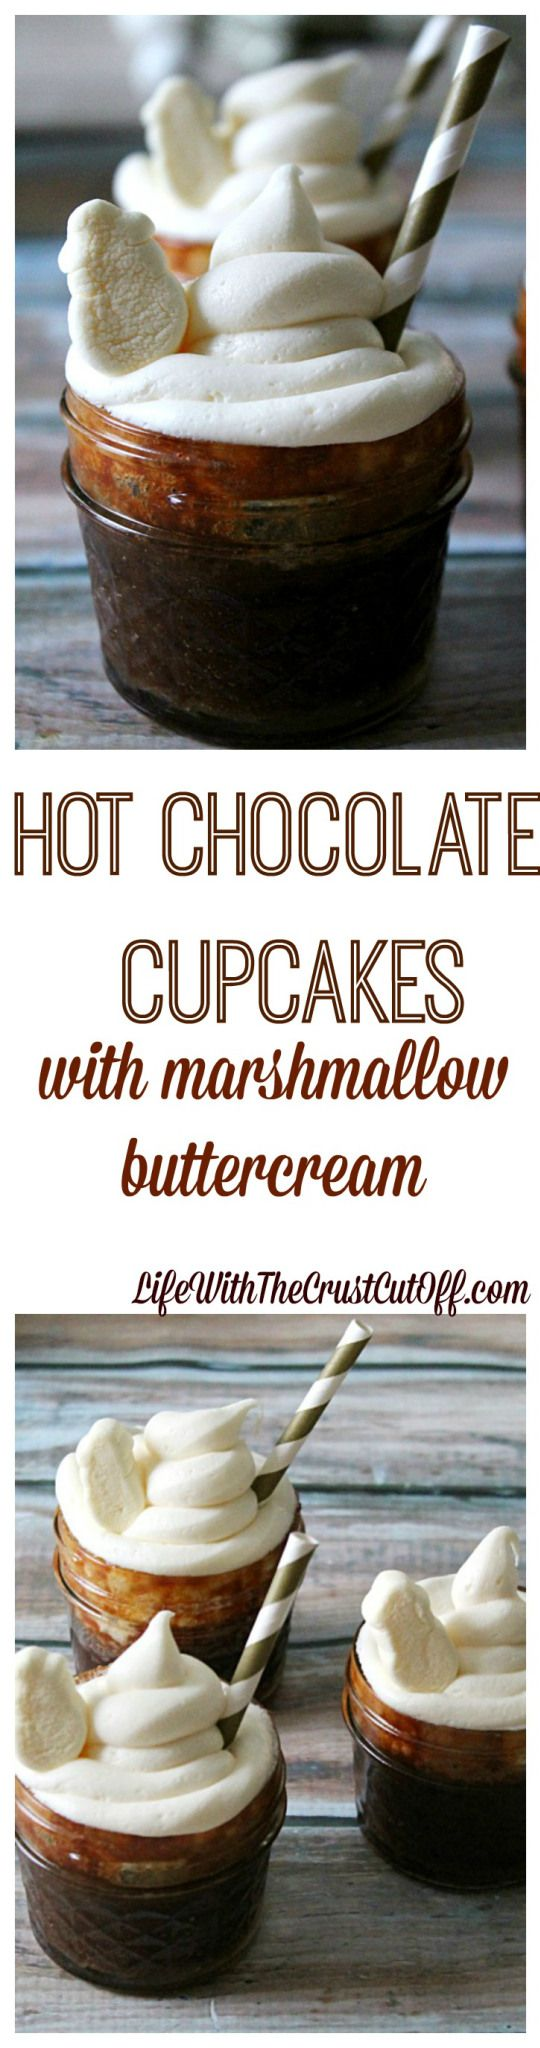 Hot Chocolate Cupcakes with Marshmallow ButterCreamLife With The Crust Cut Off